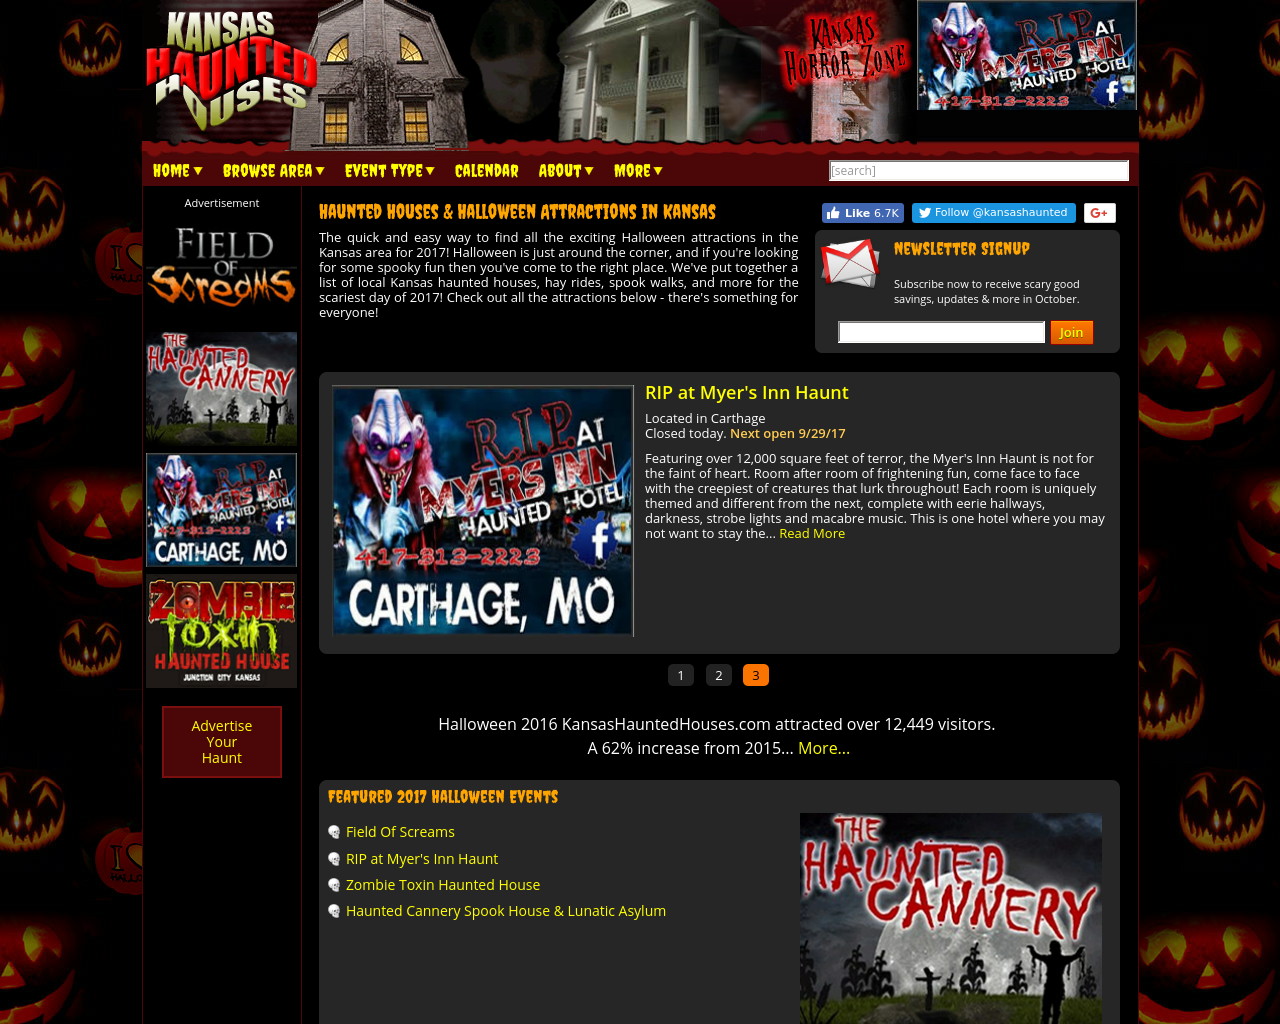 Kansas-Haunted-Houses-Advertising-Reviews-Pricing